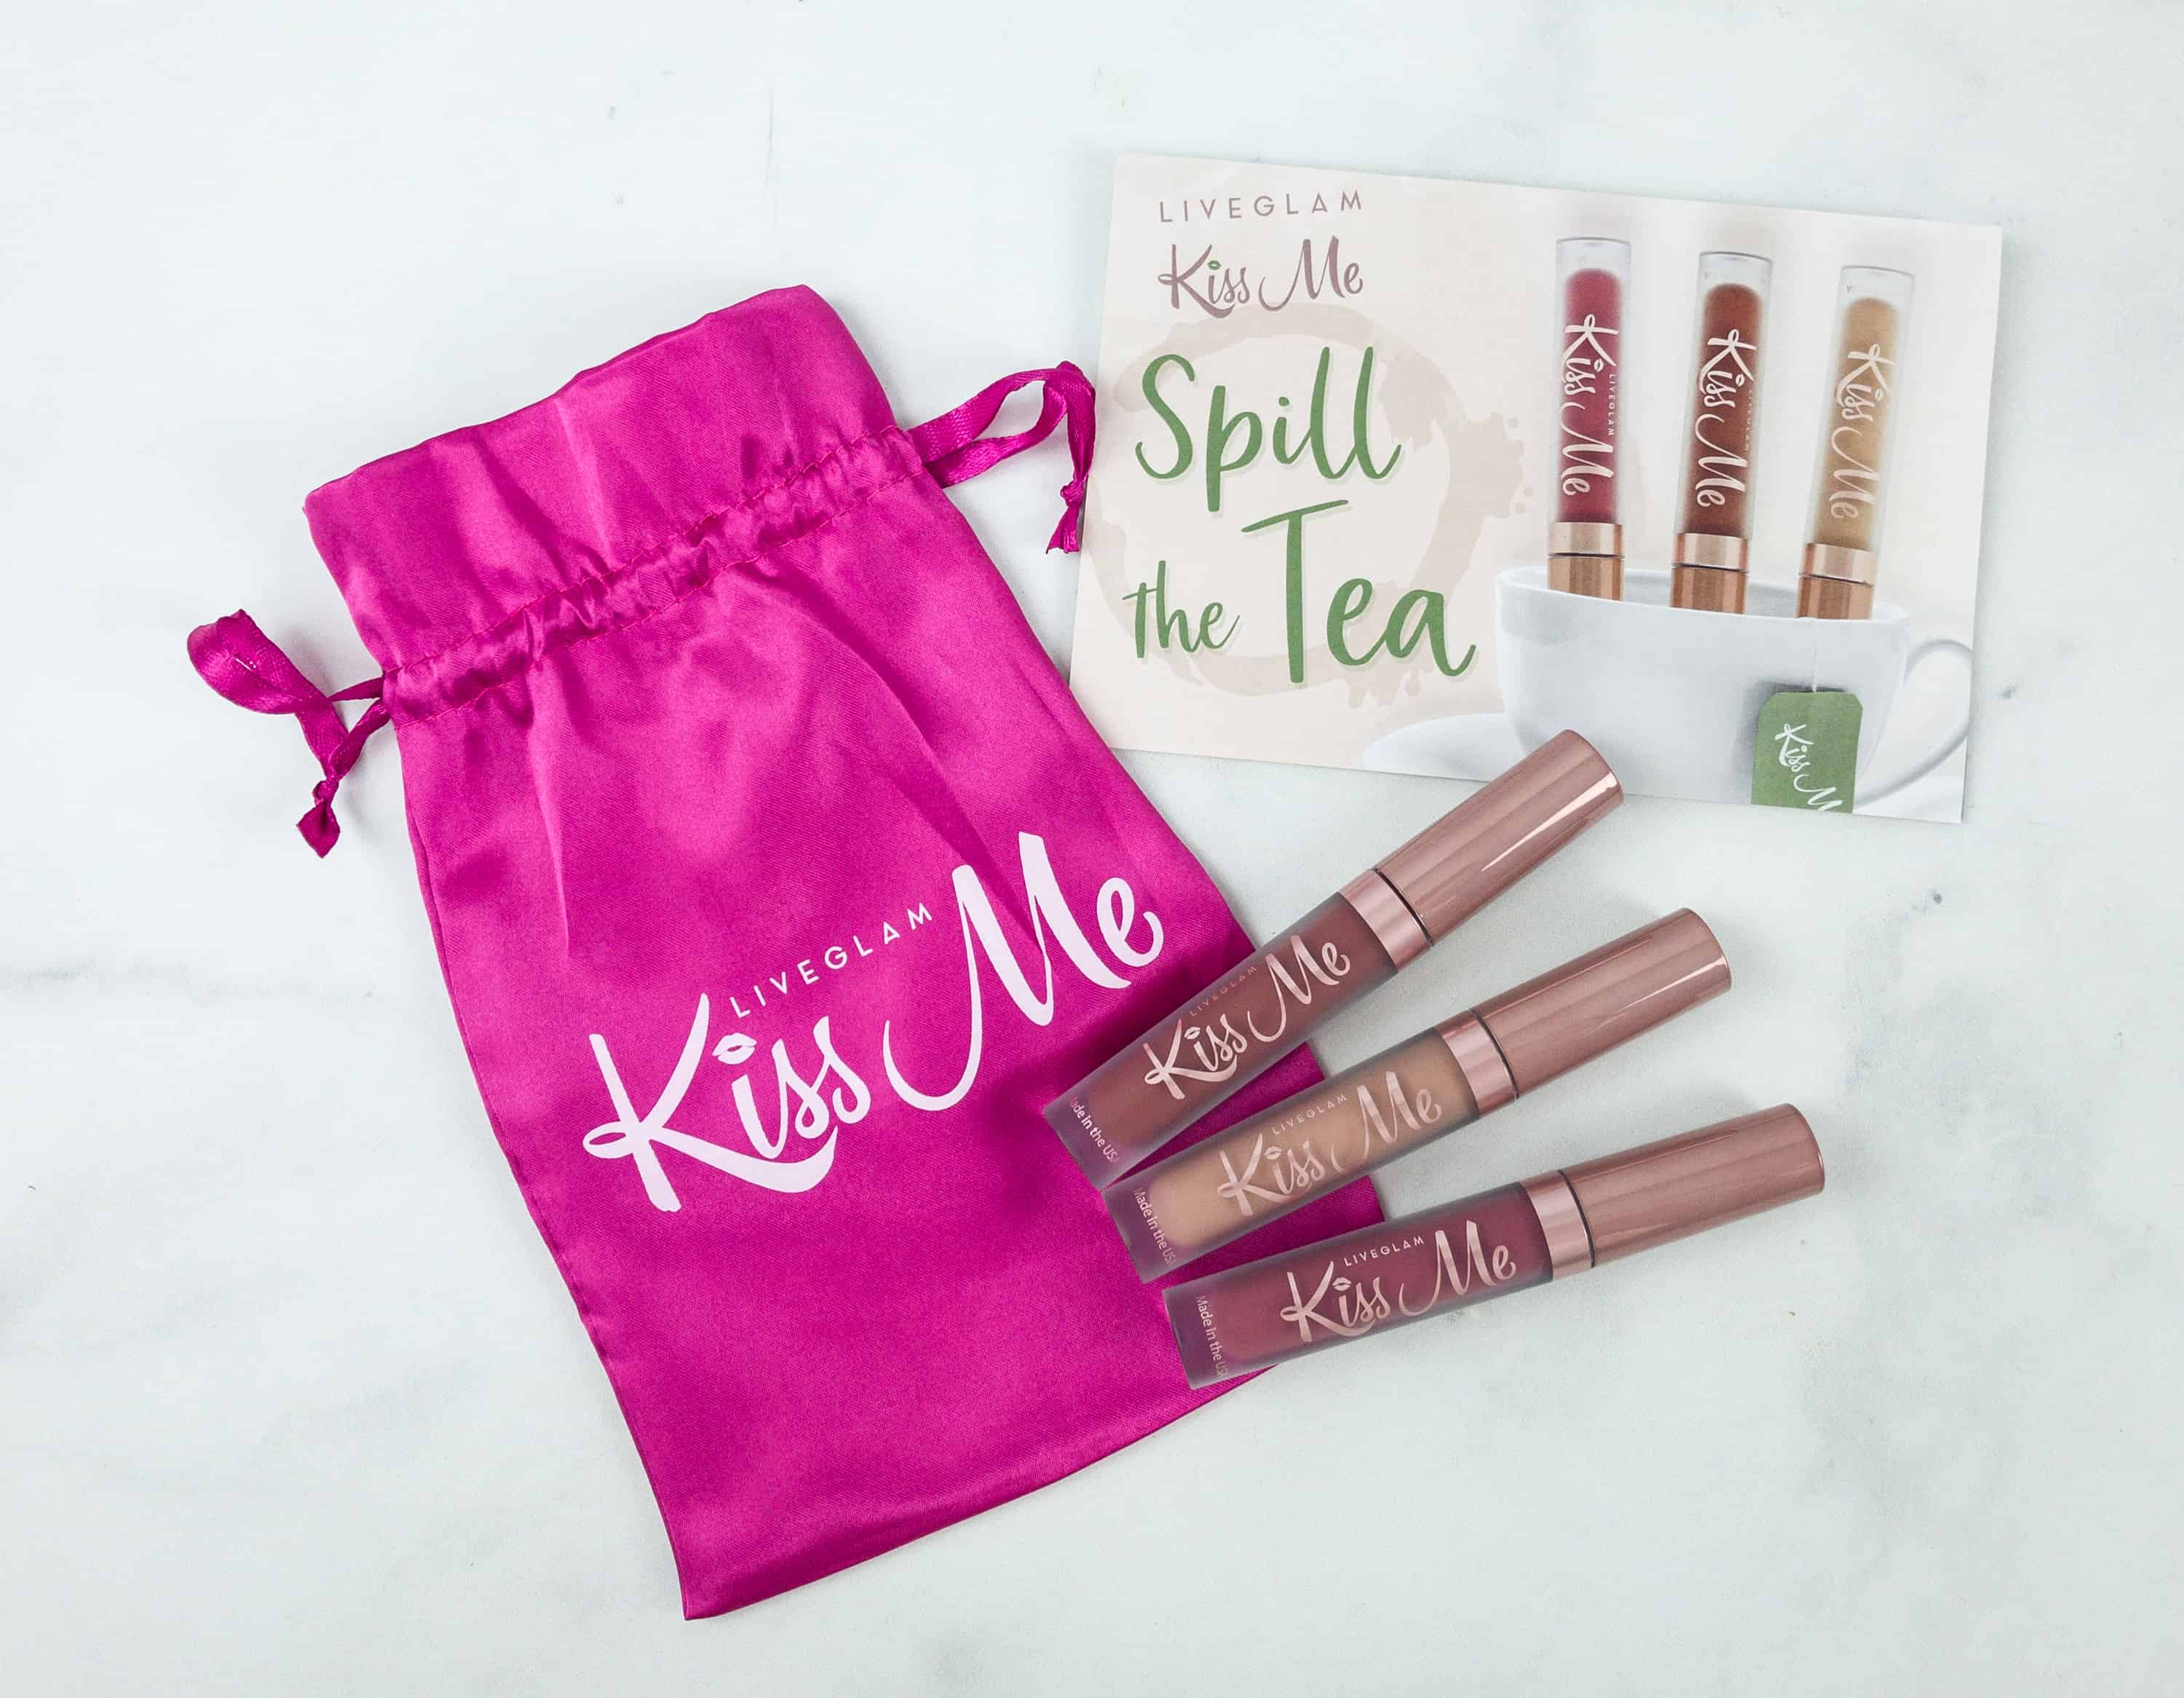 KissMe Lipstick Club September 2018 Subscription Box Review + FREE Lipstick Coupon!